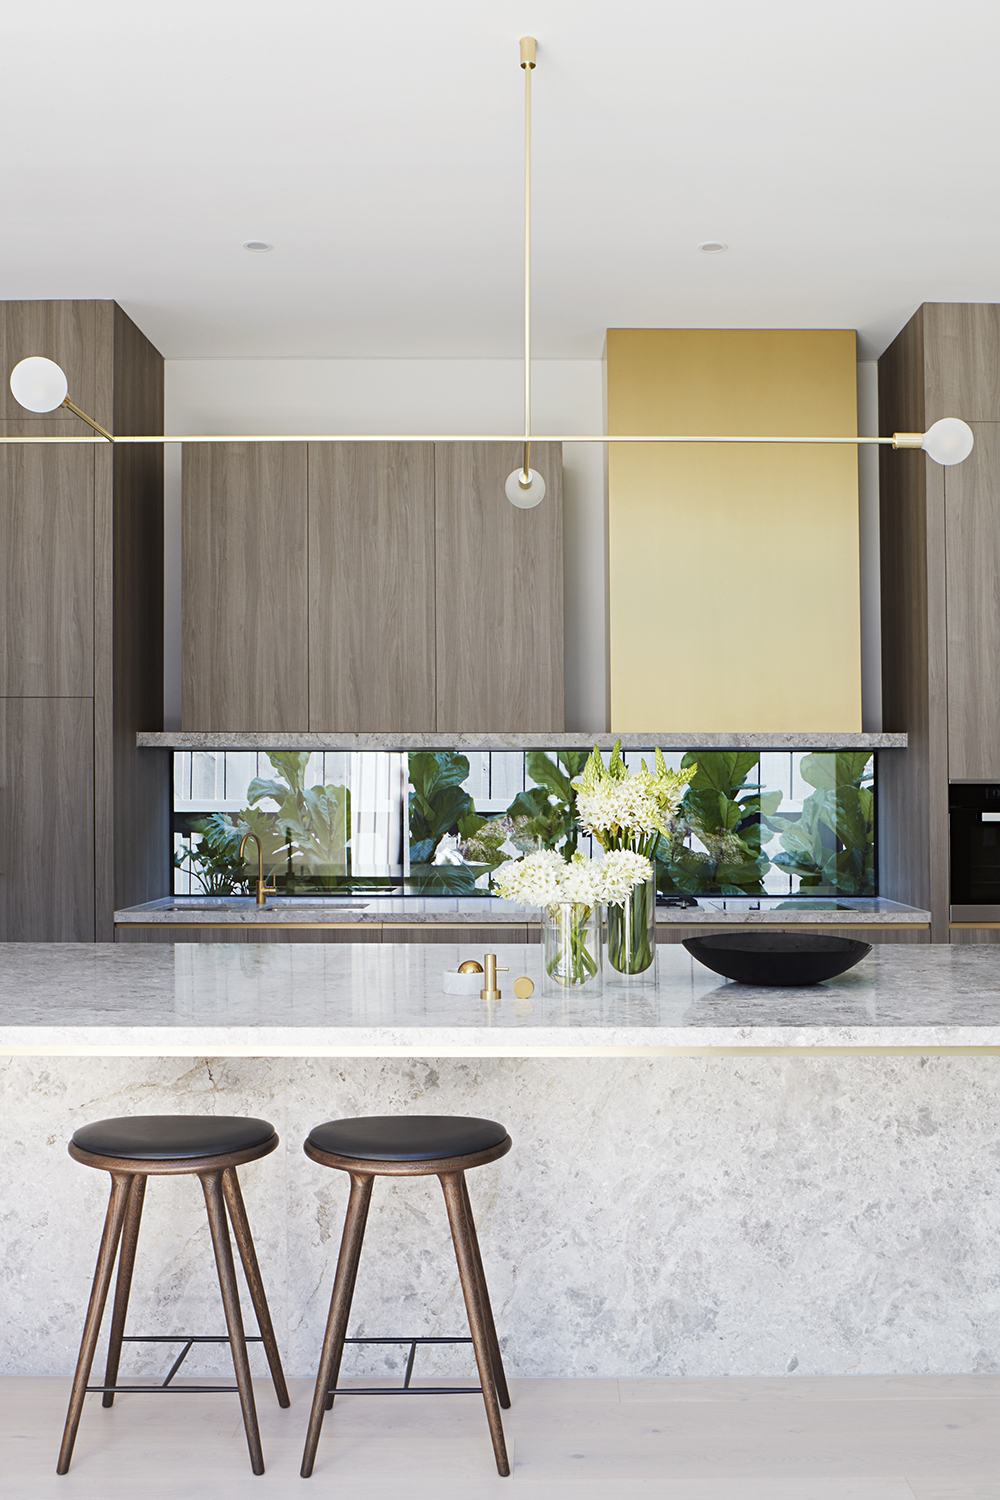 The Concrete Conceal House By Tecture Local Australian Architecture Design & Bespoke Interiors Caulfield, Melbourne Image 17